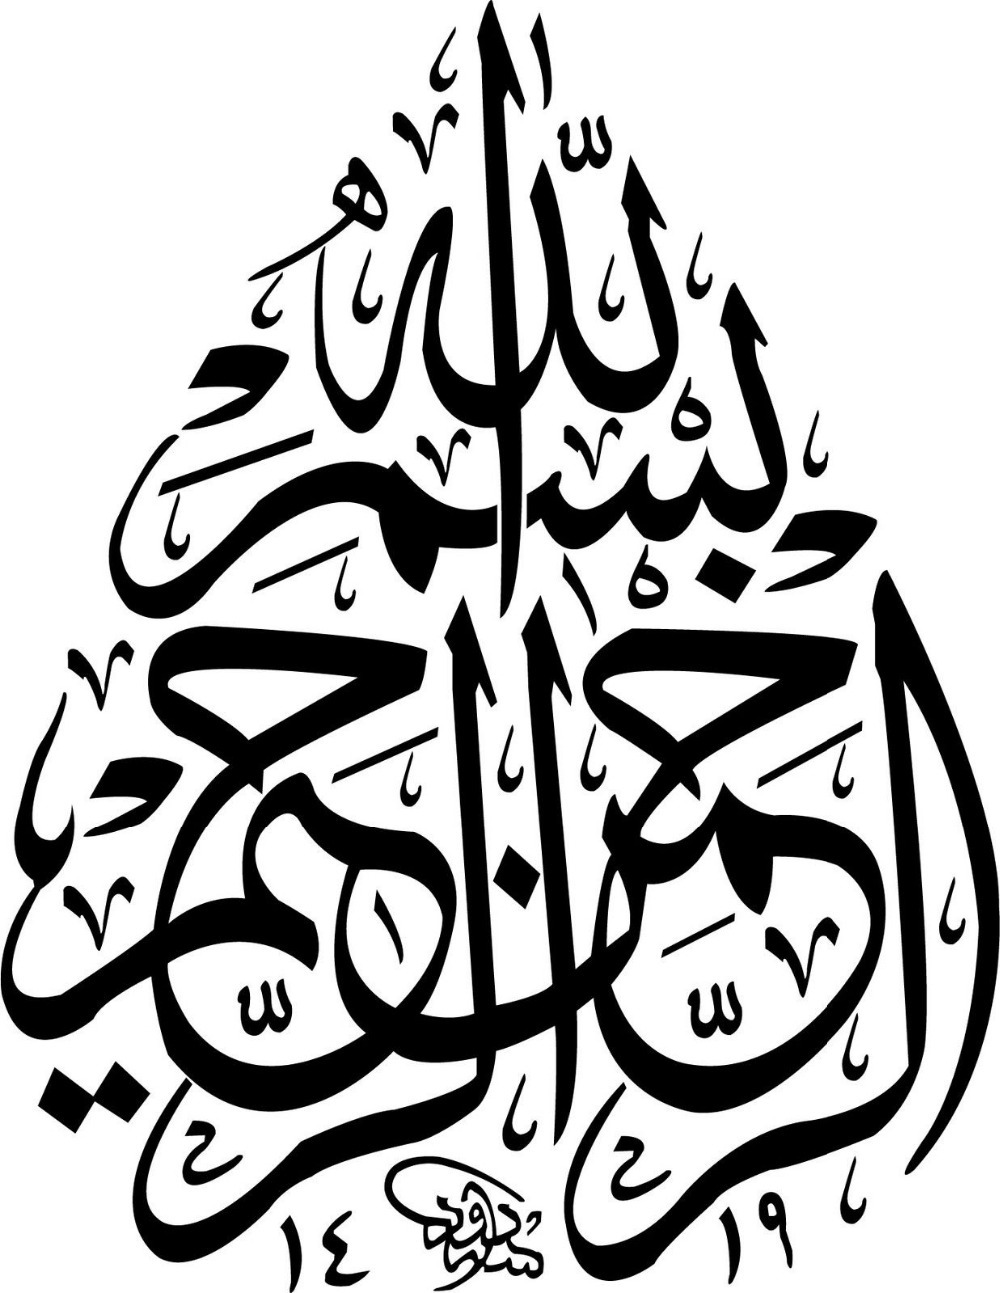 Arabic Calligraphy Stickers Online | Arabic Calligraphy Wall ...